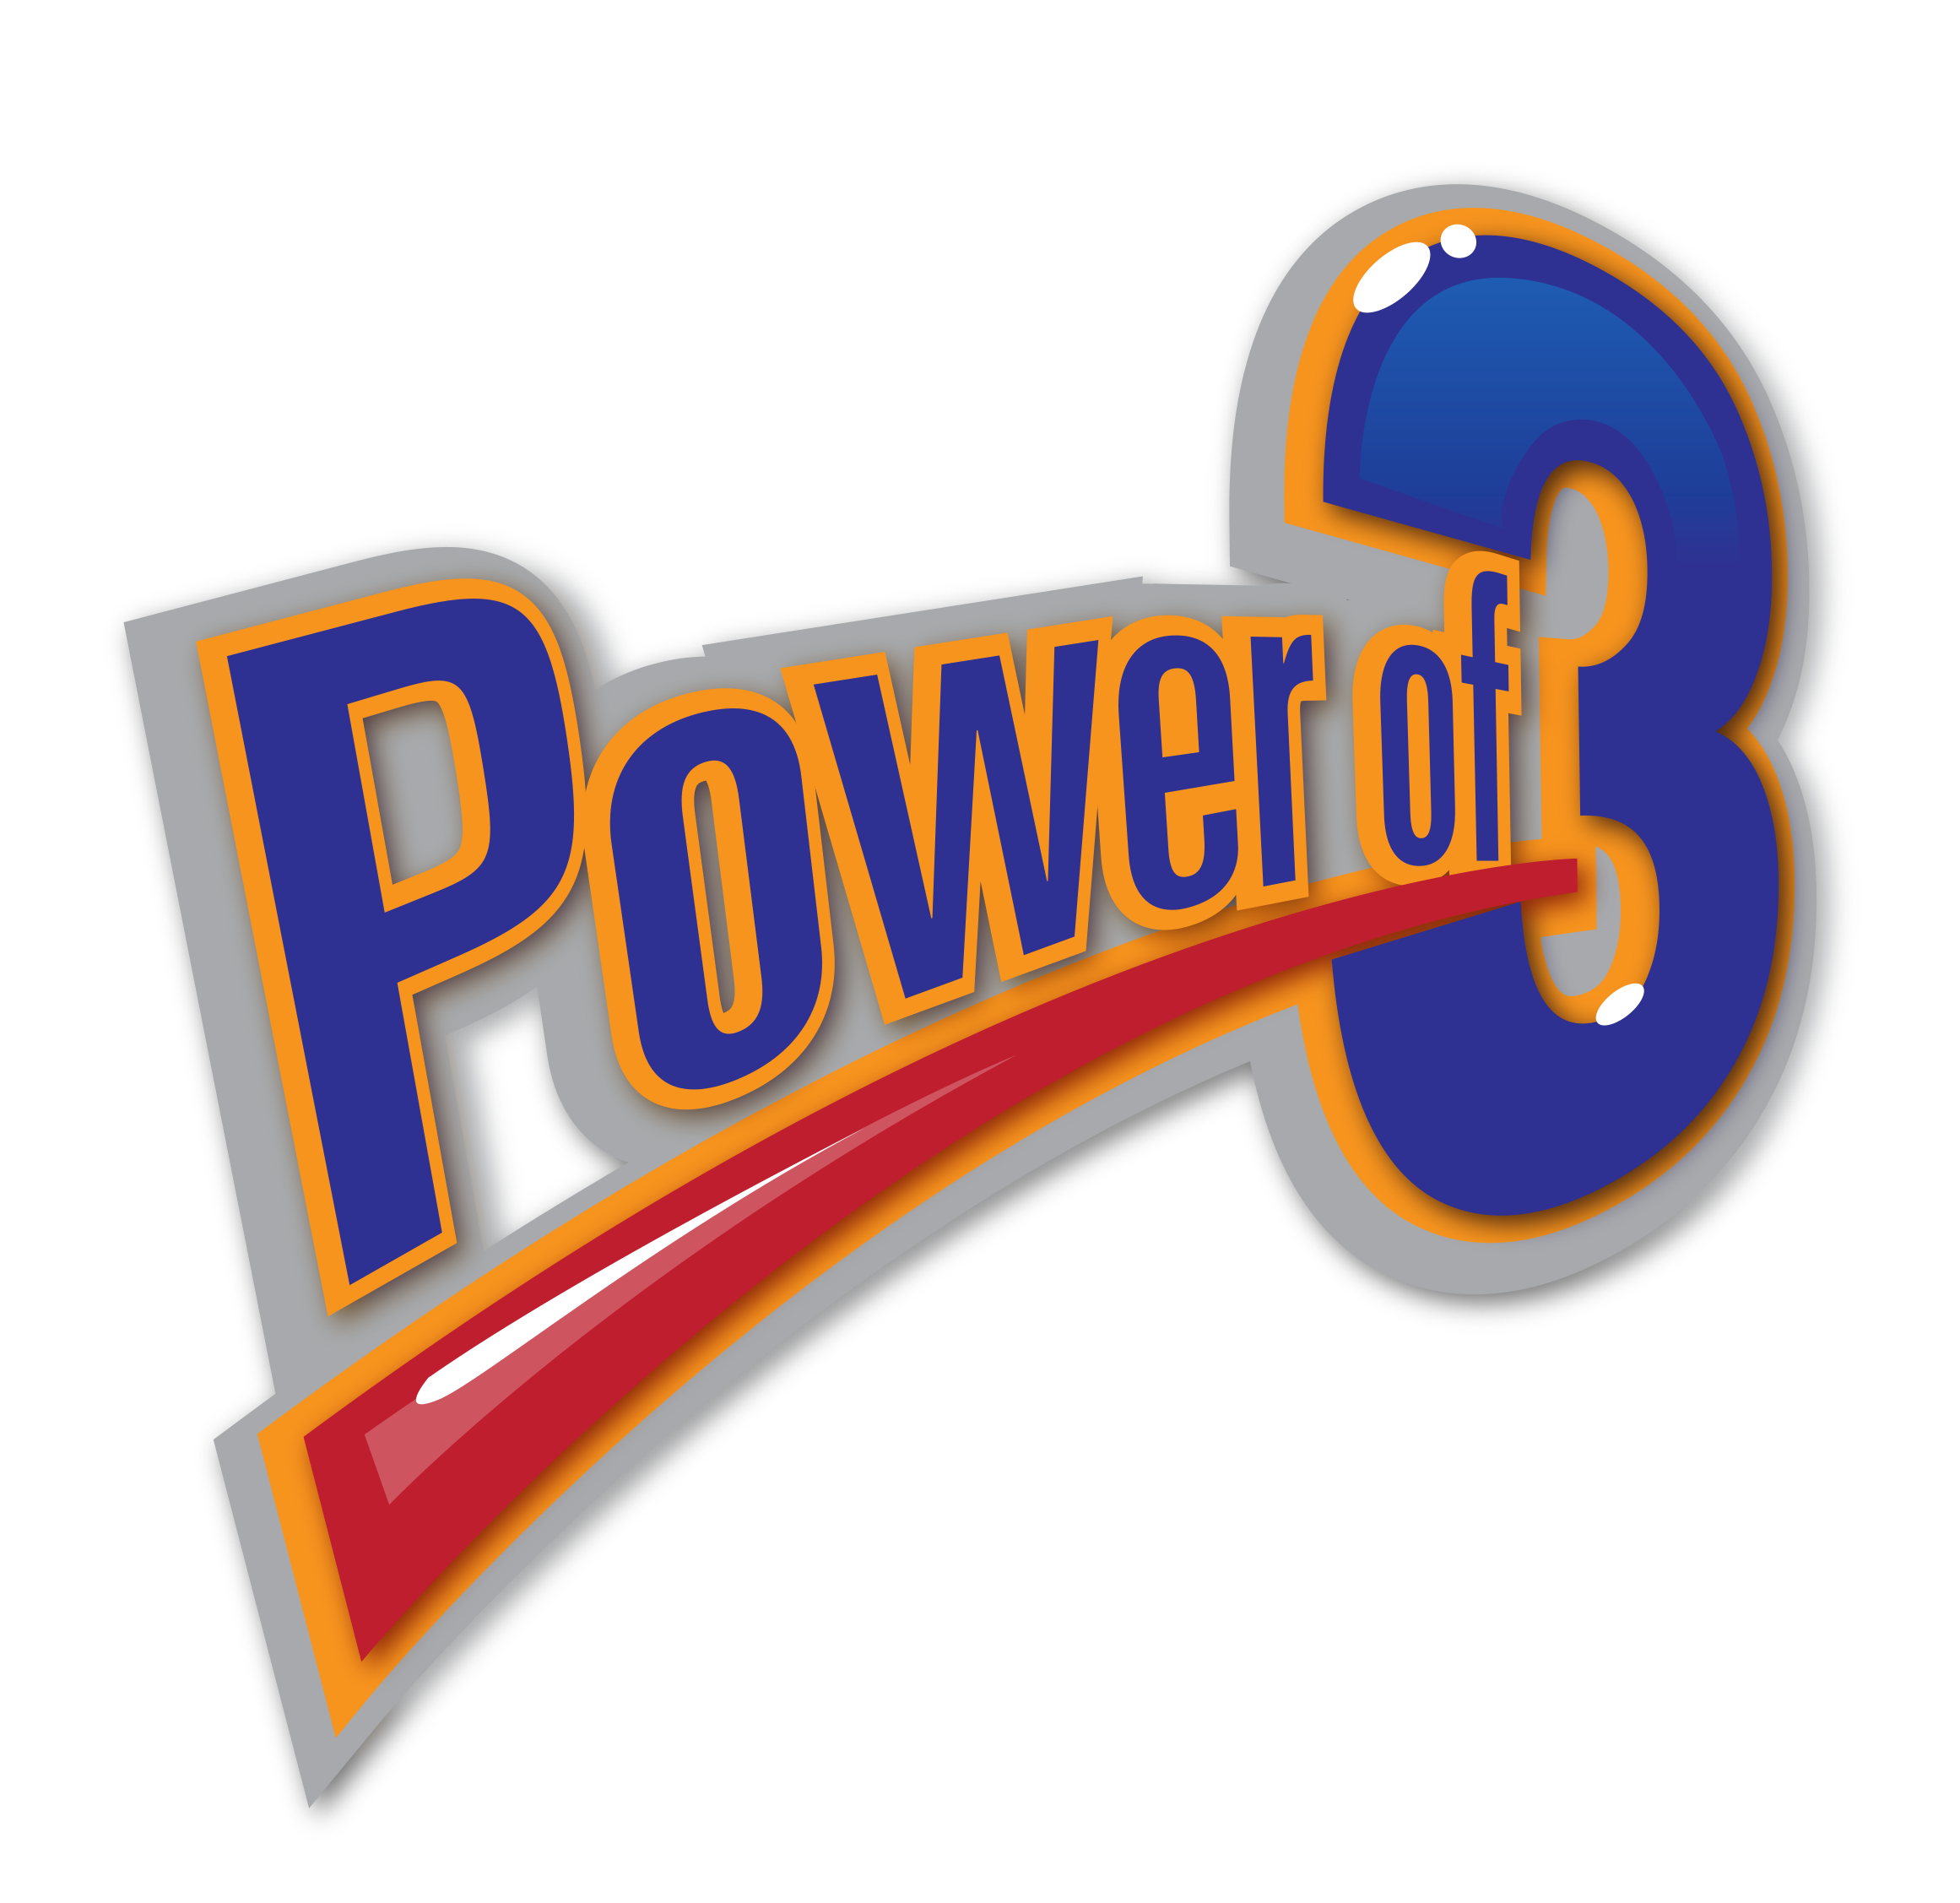 power - photo #34